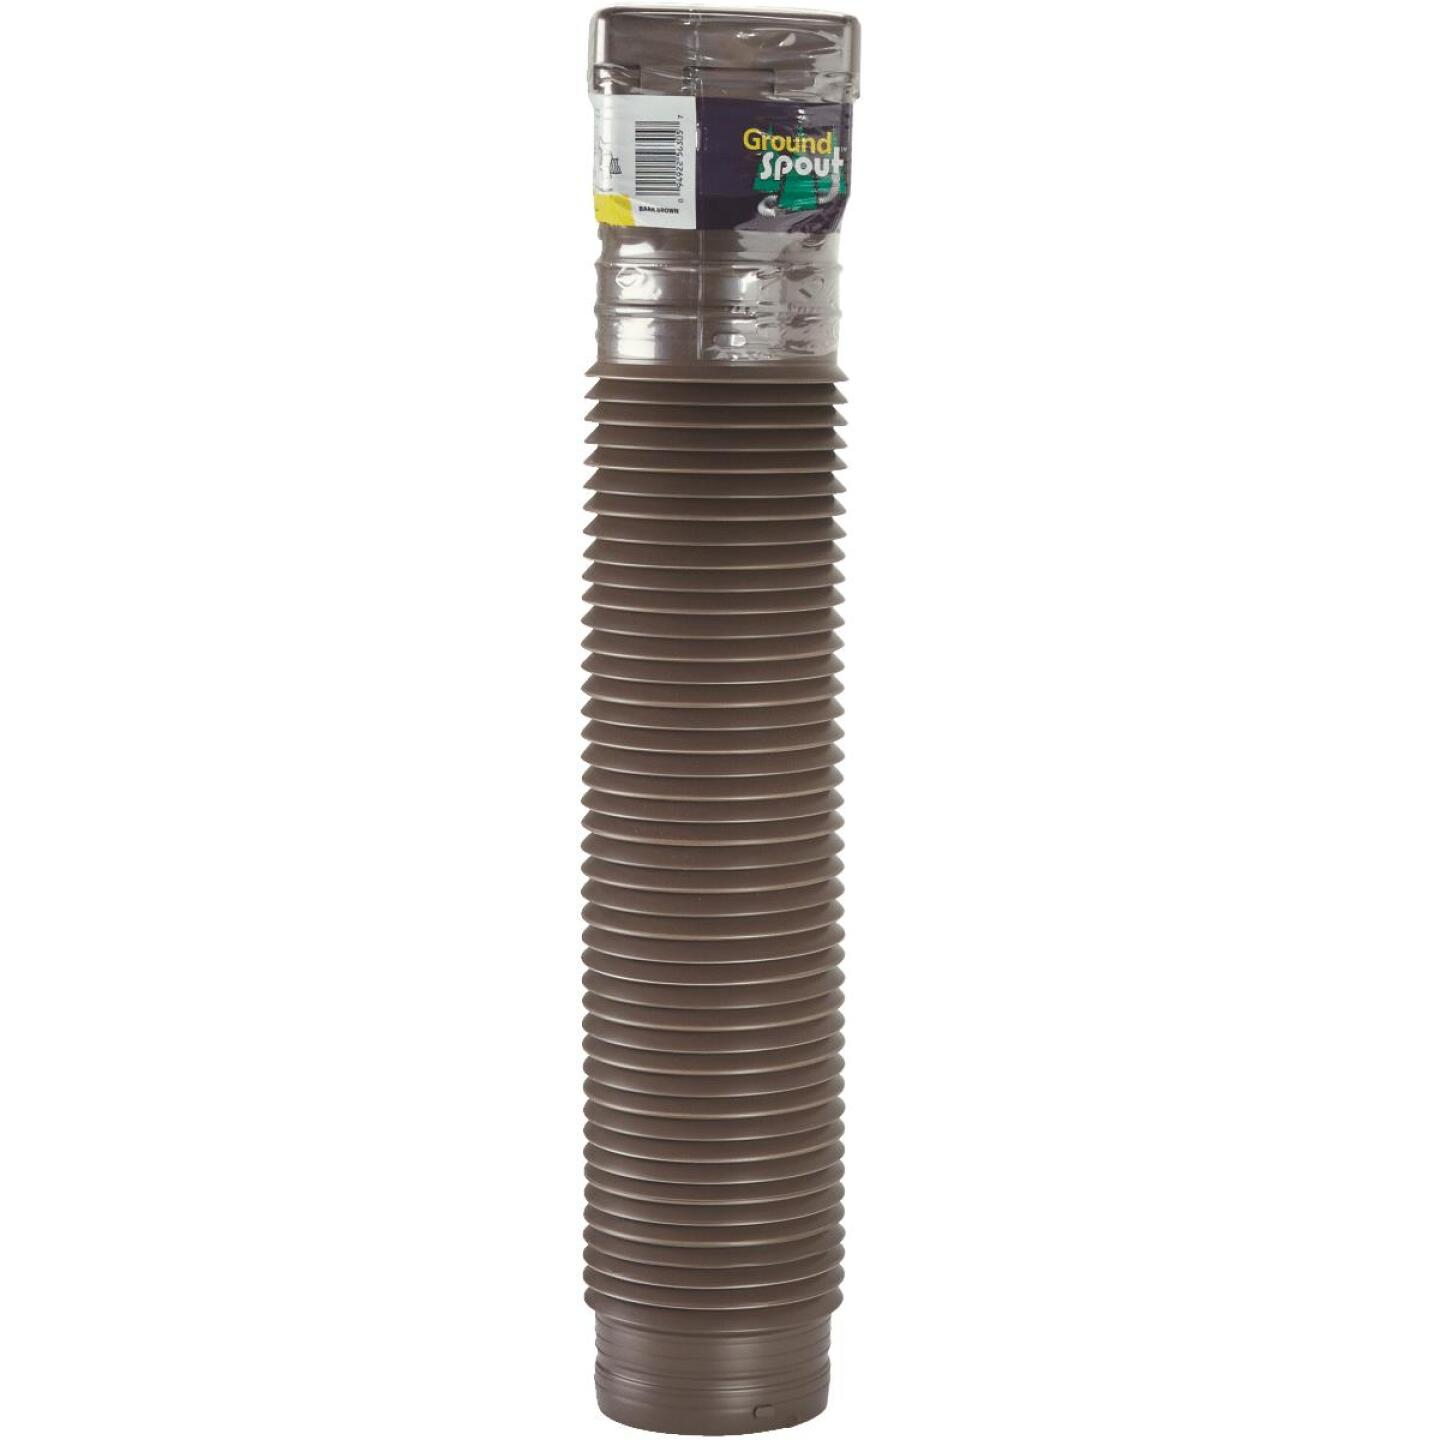 Spectra Metals Ground Spout 22 In. to 48 In. Brown K-Style Polypropylene Downspout Extender Image 2